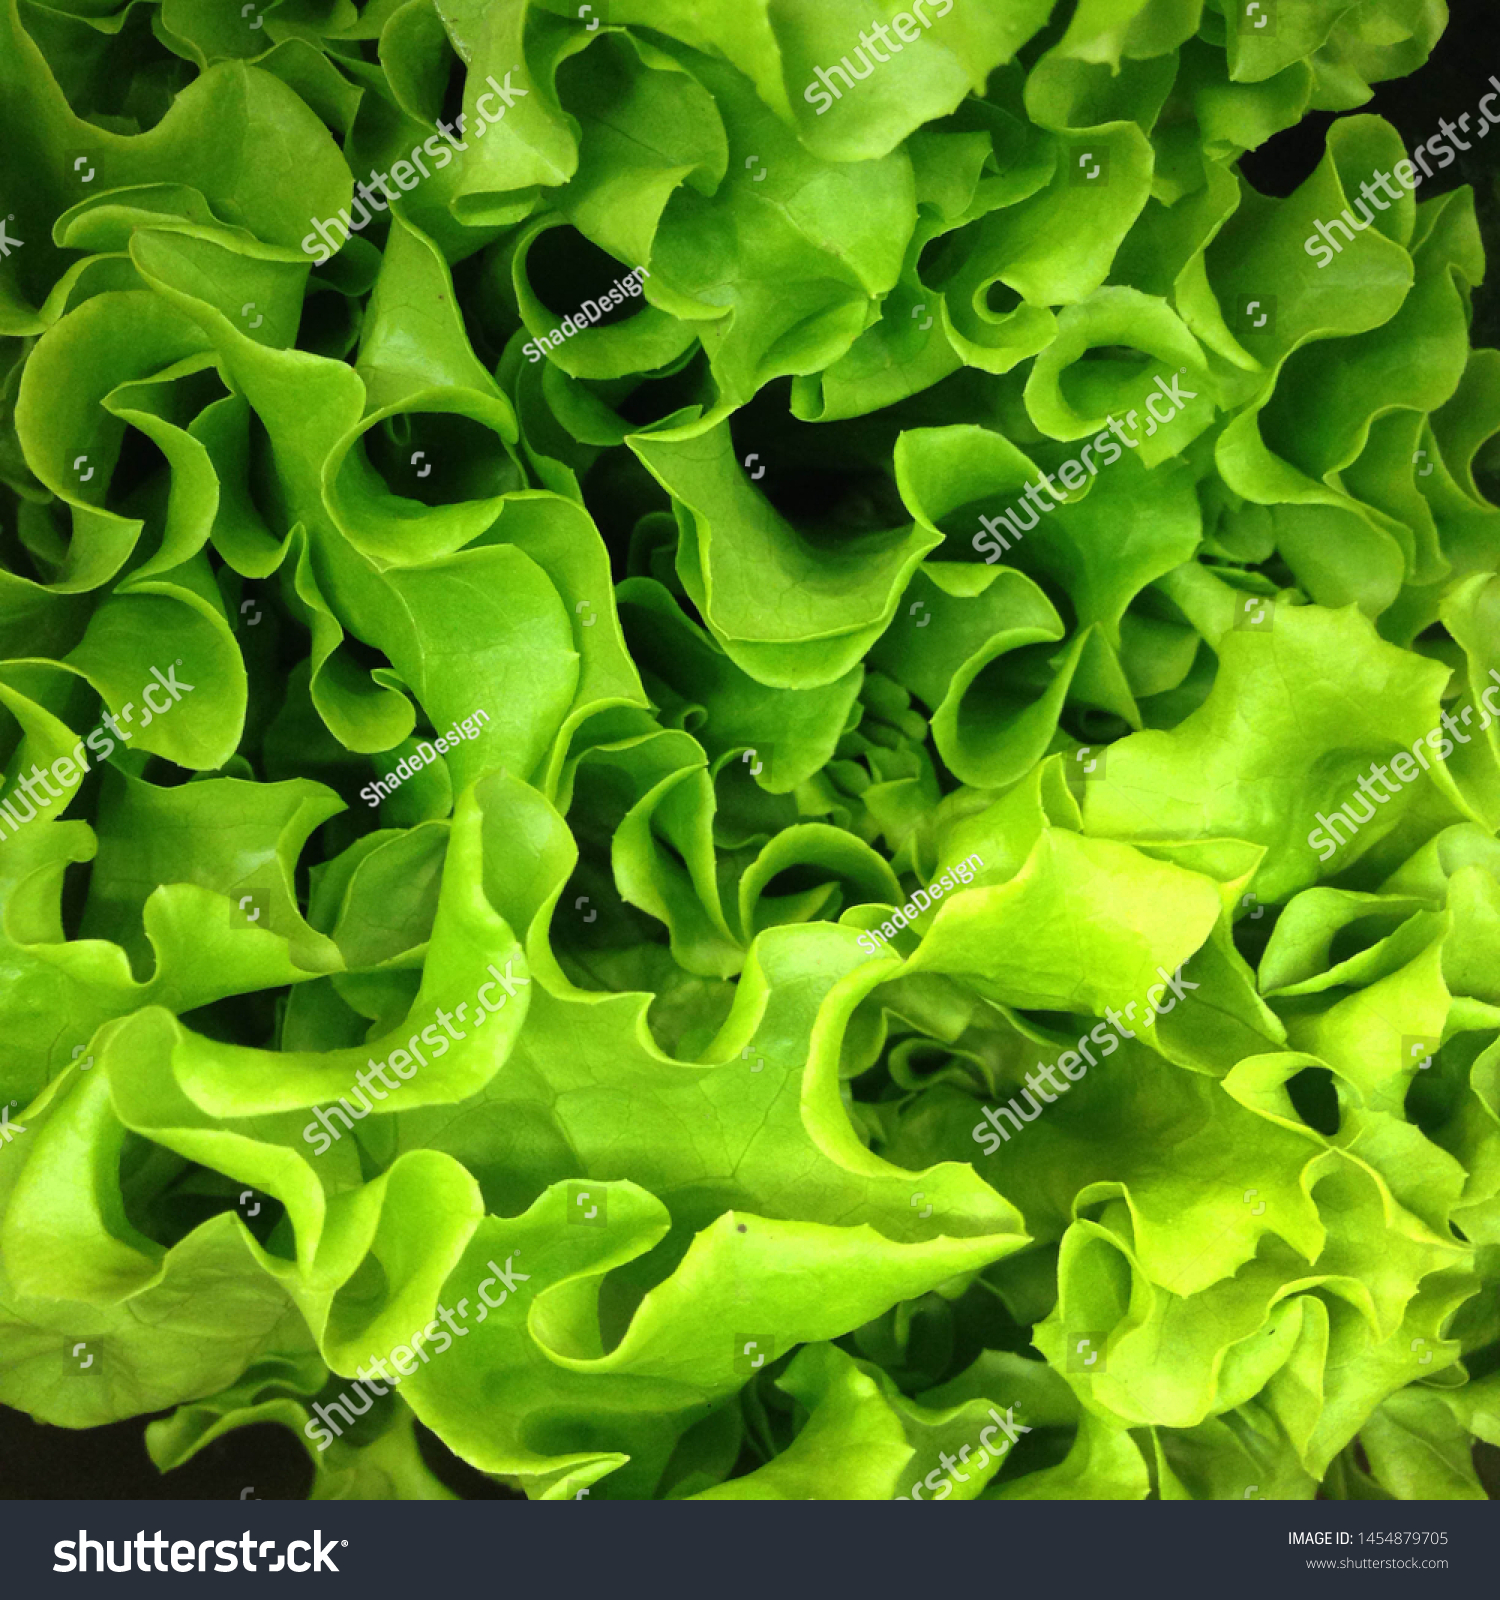 Macro Photo food vegetable green  salad. Texture background fresh mixed  Lettuce green  salad. Product Image Vegetable green salad #1454879705